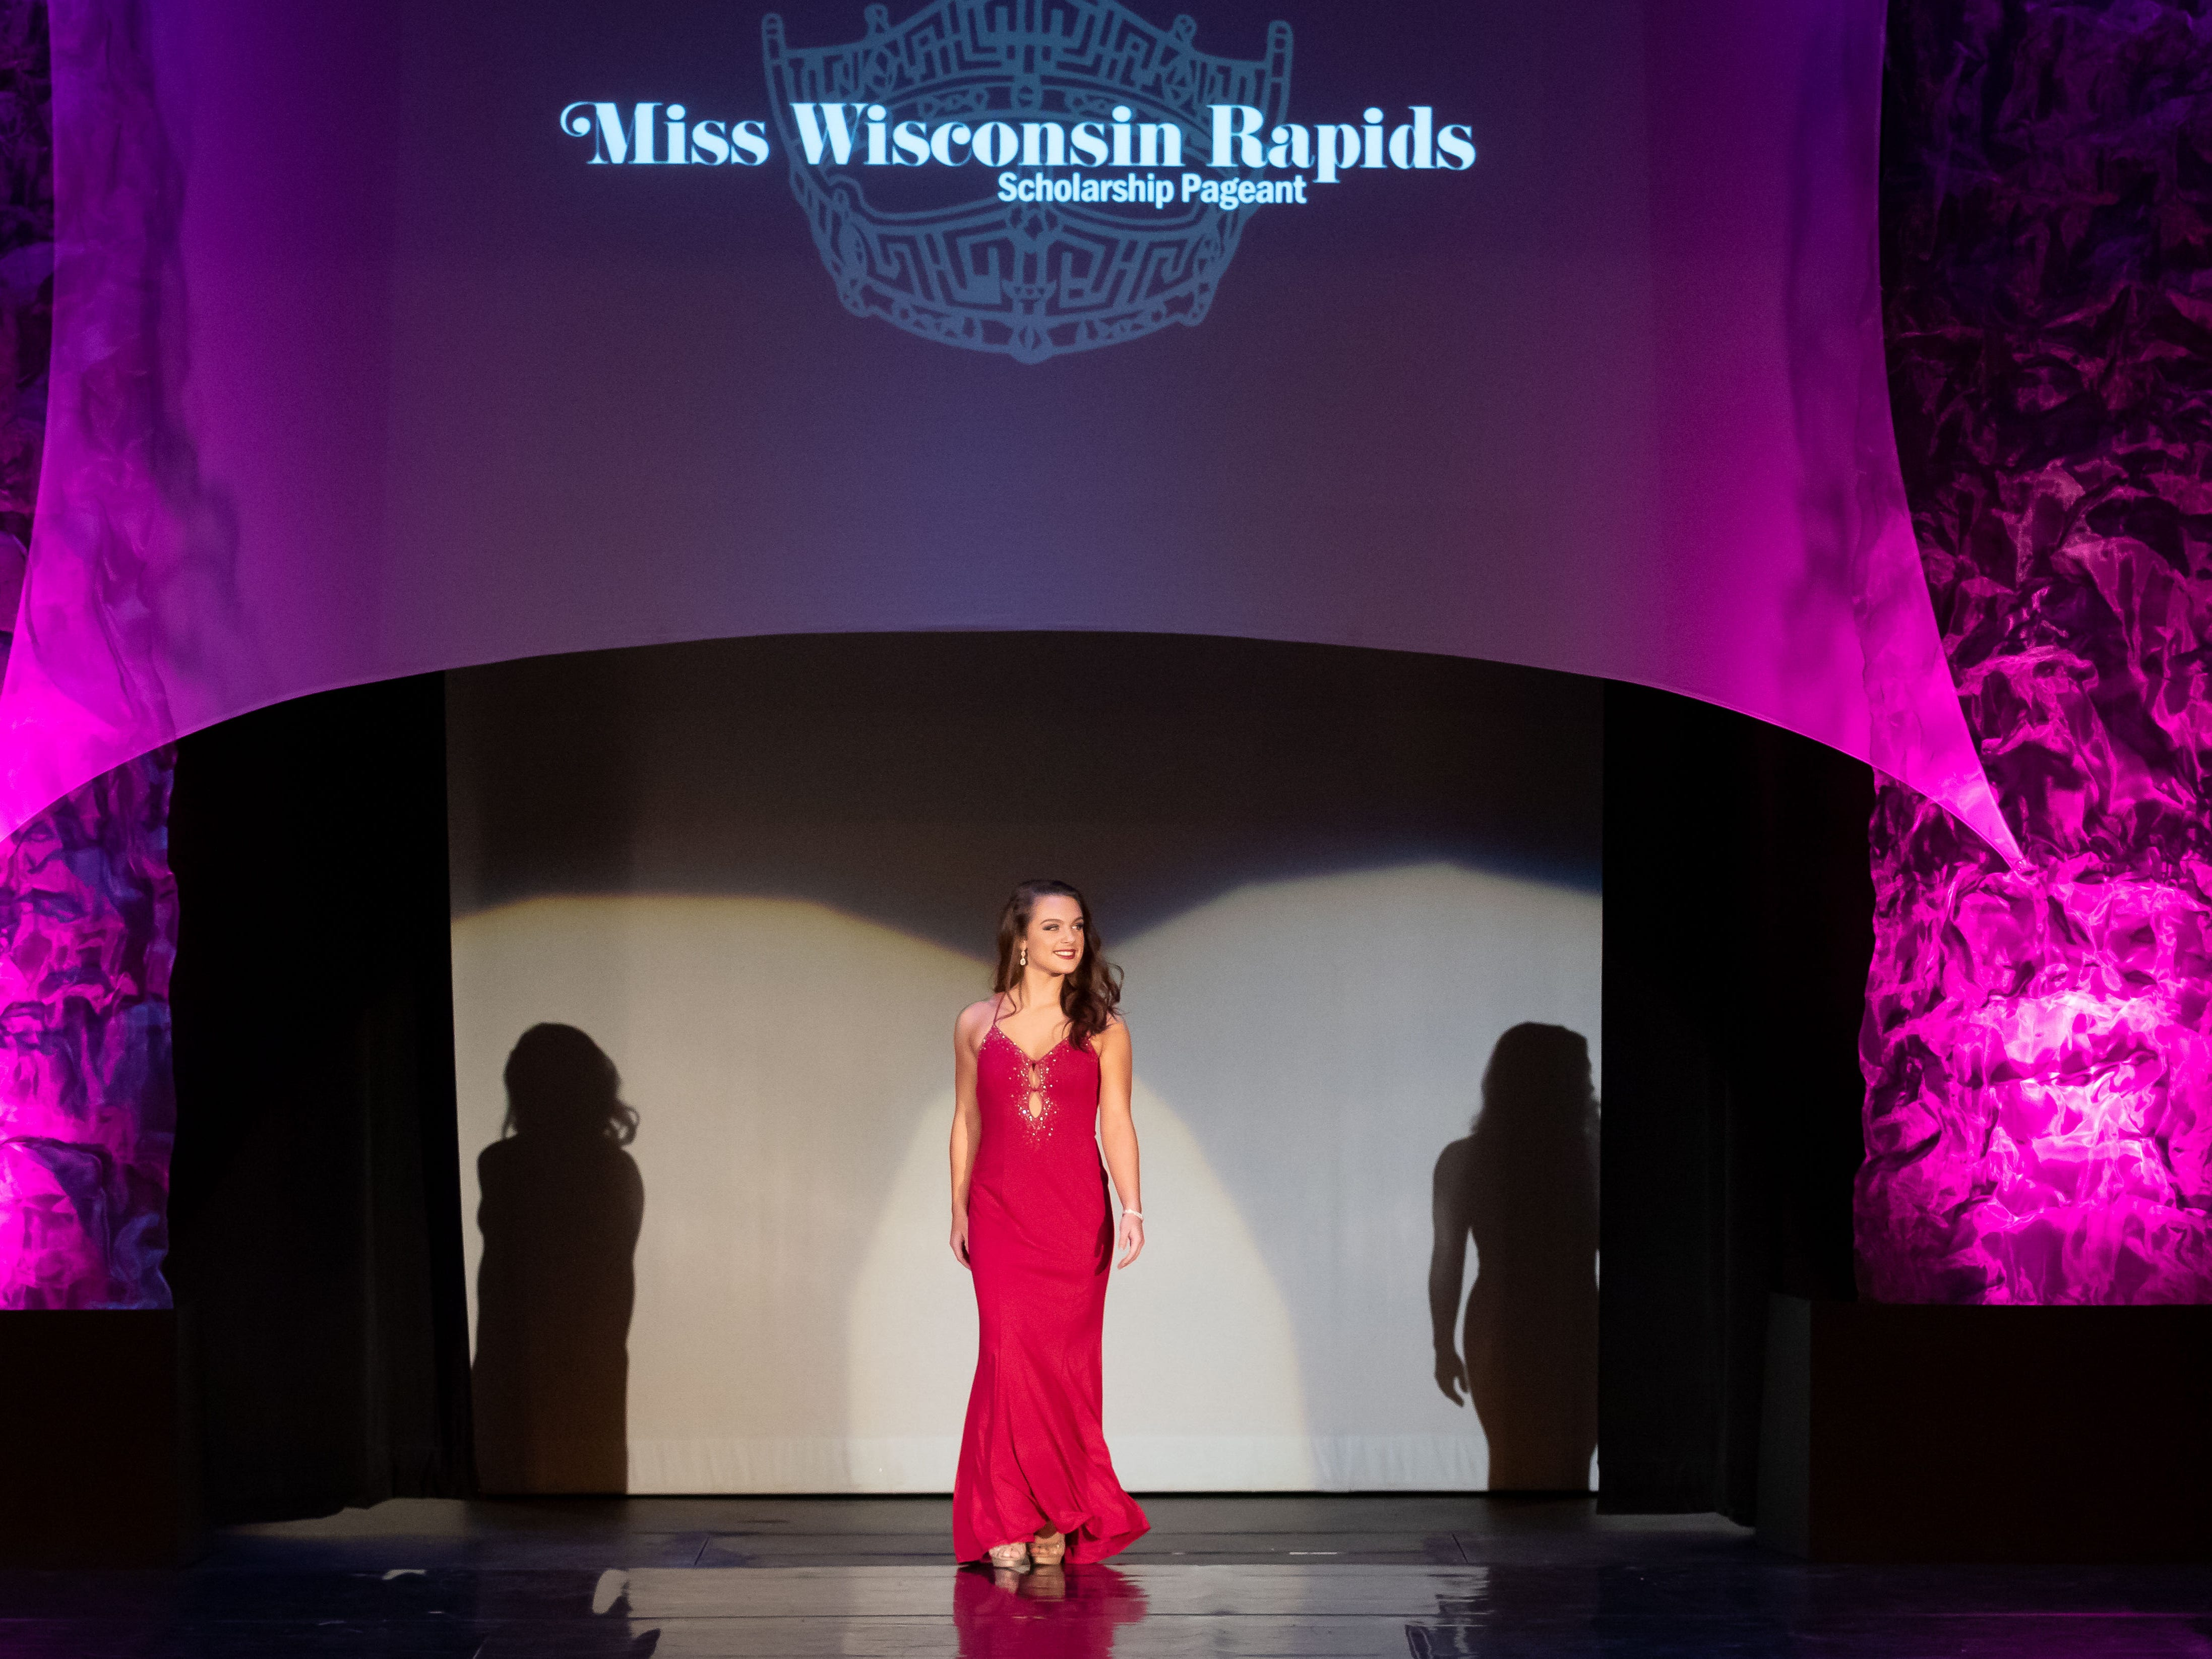 Carly Parvin competes in the Evening Wear competition during the 2019 Miss Wisconsin Rapids Area Scholarship Pageant on Saturday, Oct. 27, 2018, at the Performing Arts Center of Wisconsin Rapids.